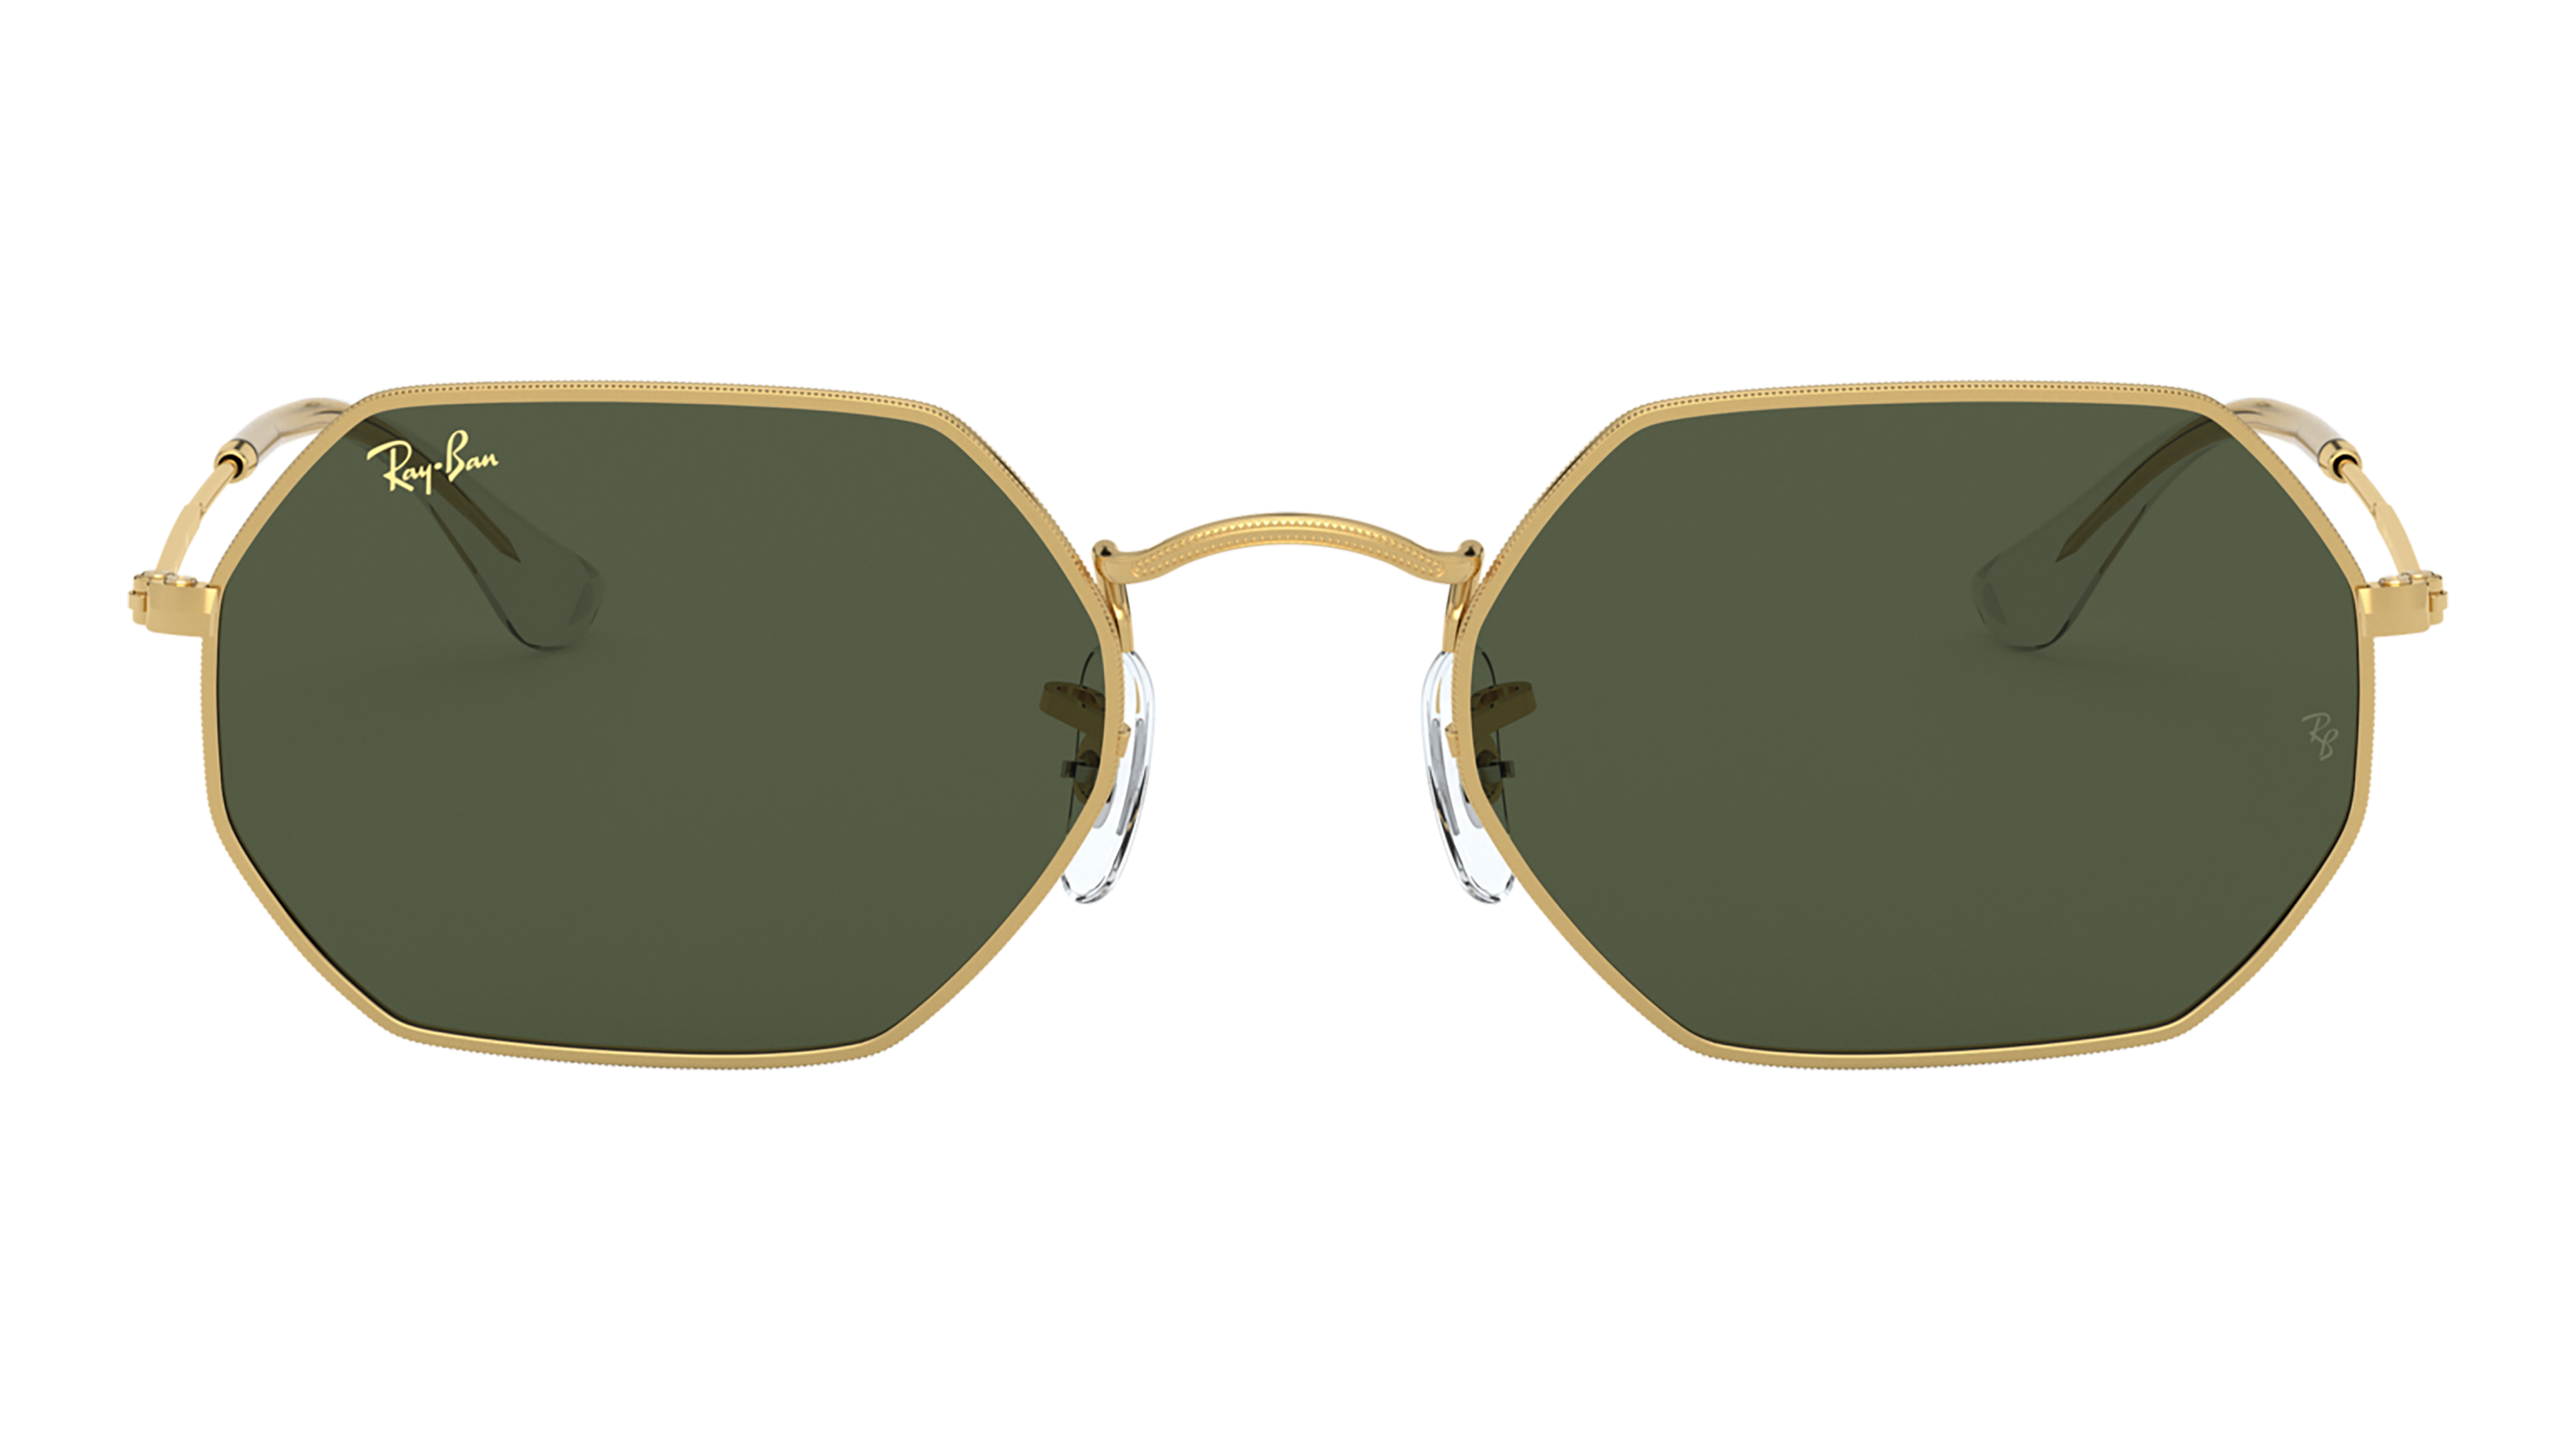 Front Ray-Ban Ray-Ban 0RB3556 919631 53/21 Goud/Blauw